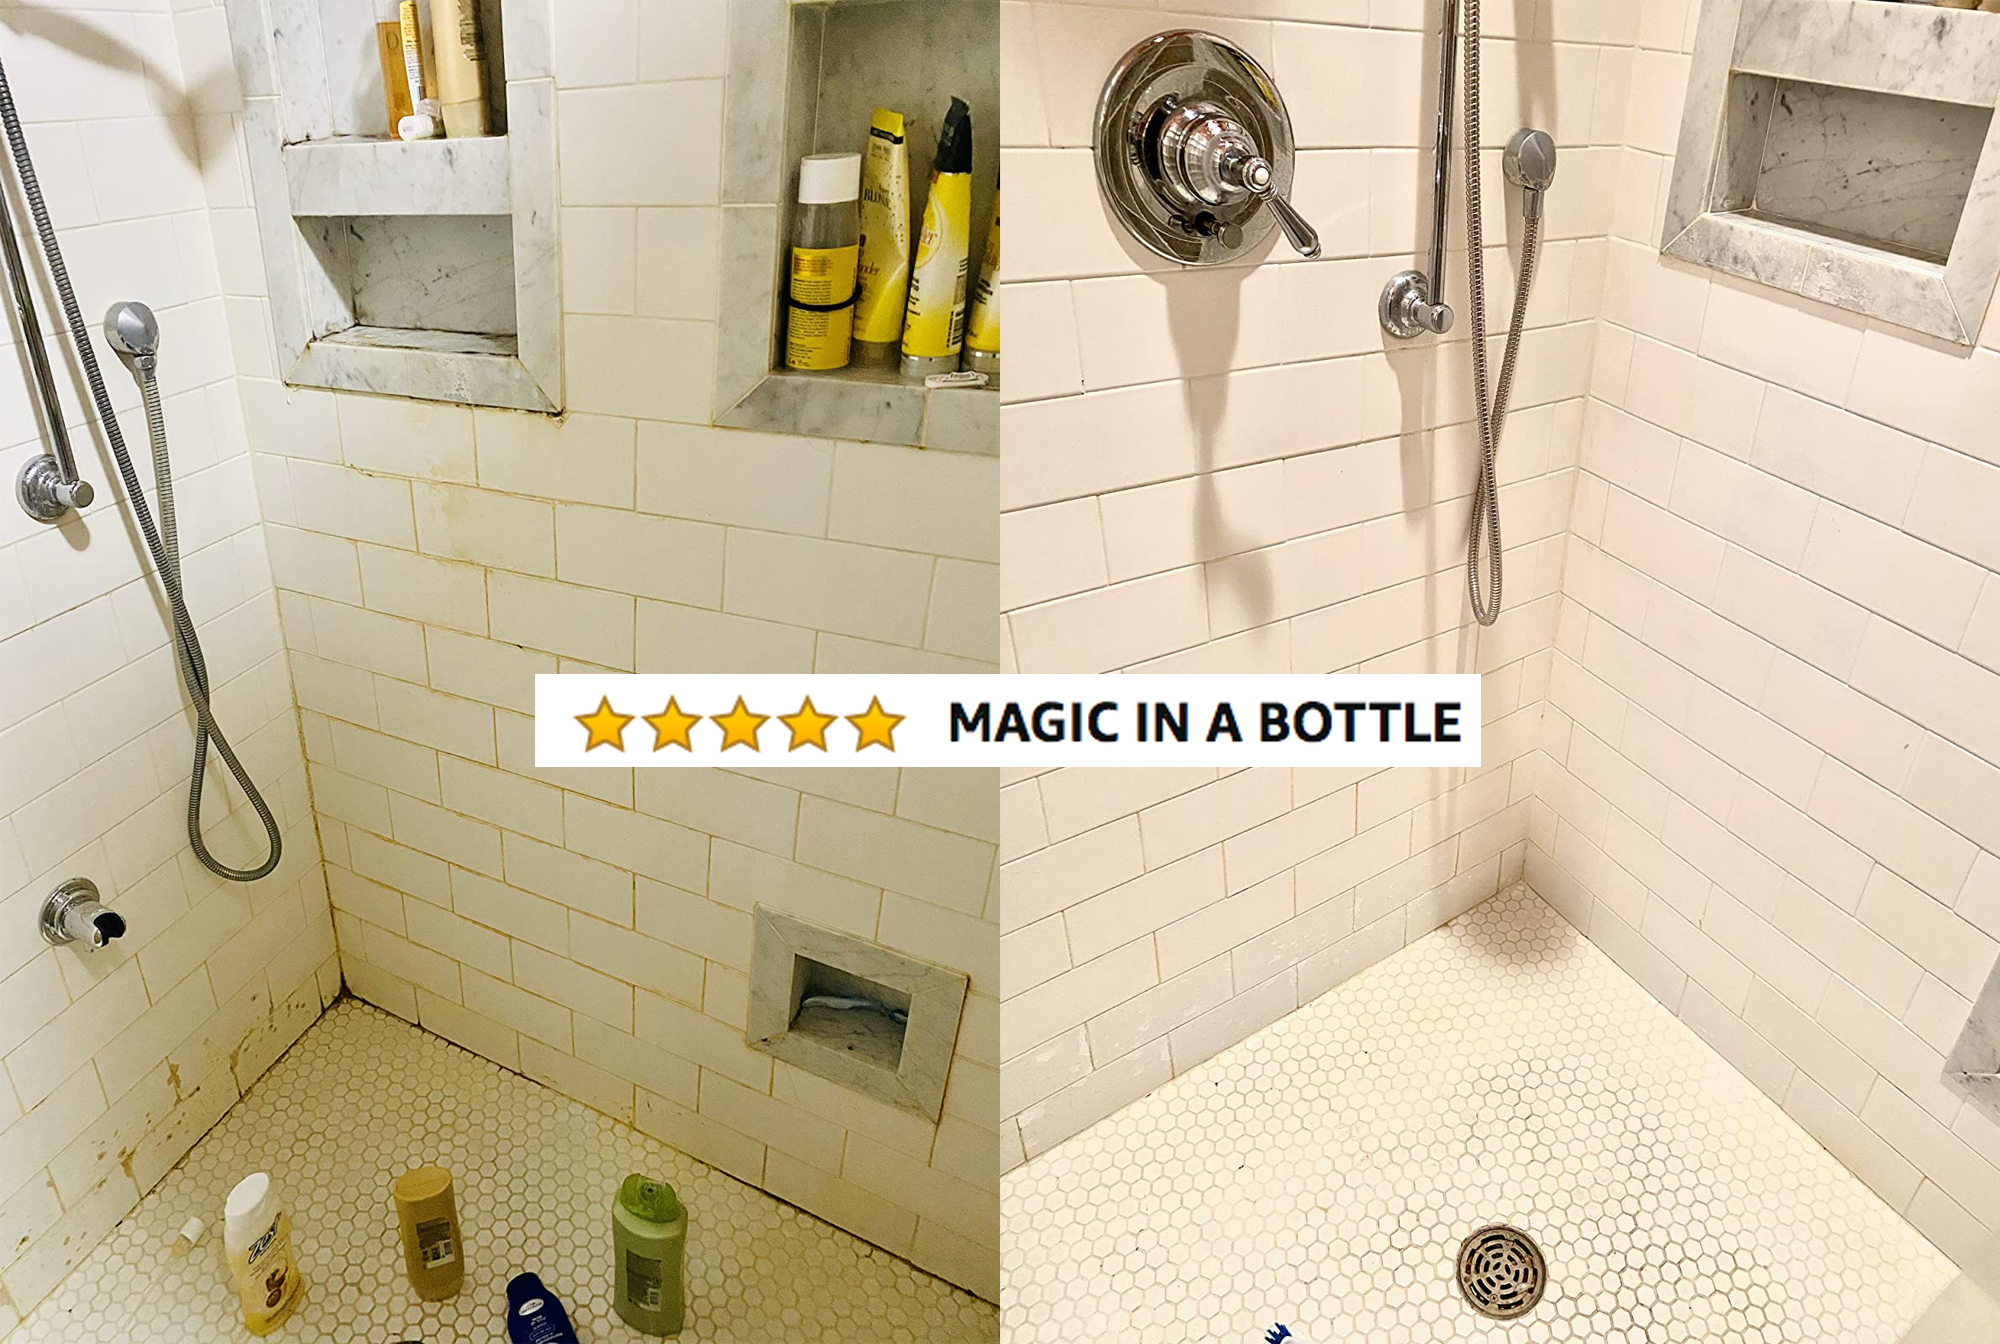 """A reviewer's before/after of their shower showing black gunk and mold that's now gone, with five stars and text """"magic in a bottle"""""""